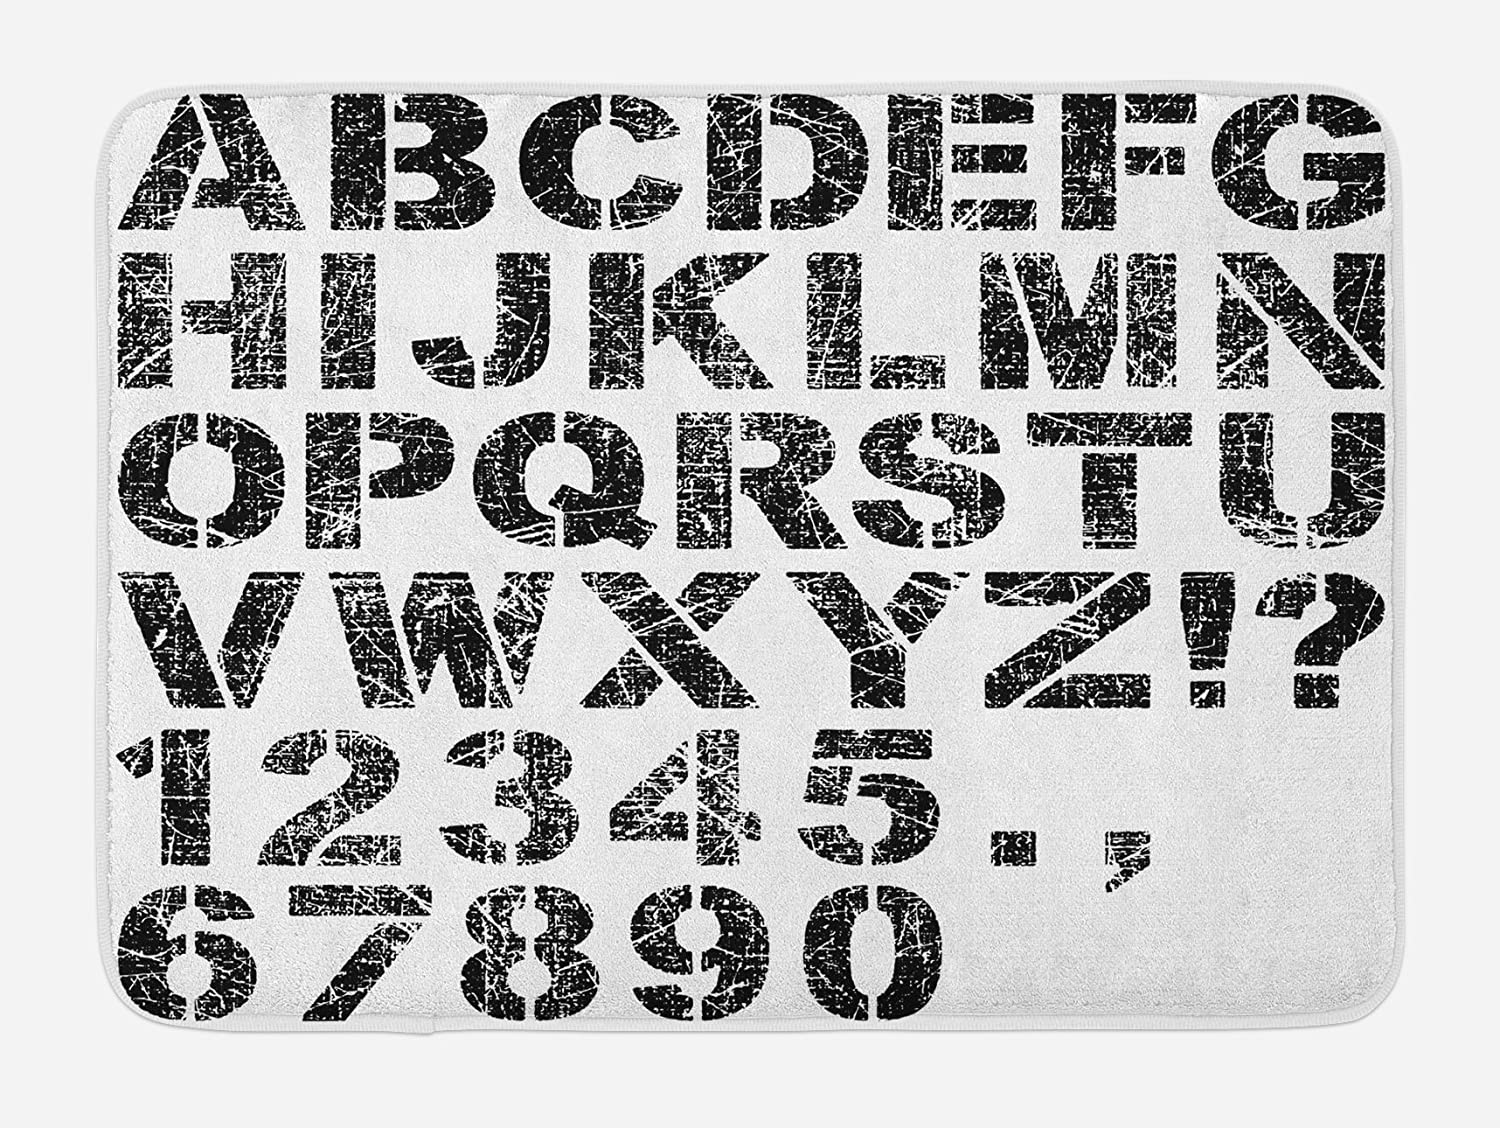 Ambesonne Letters Bath Mat, Alphabet Concept Grunge Stencil Letters and Numbers Distressed Scratched Look, Plush Bathroom Decor Mat with Non Slip Backing, 29.5